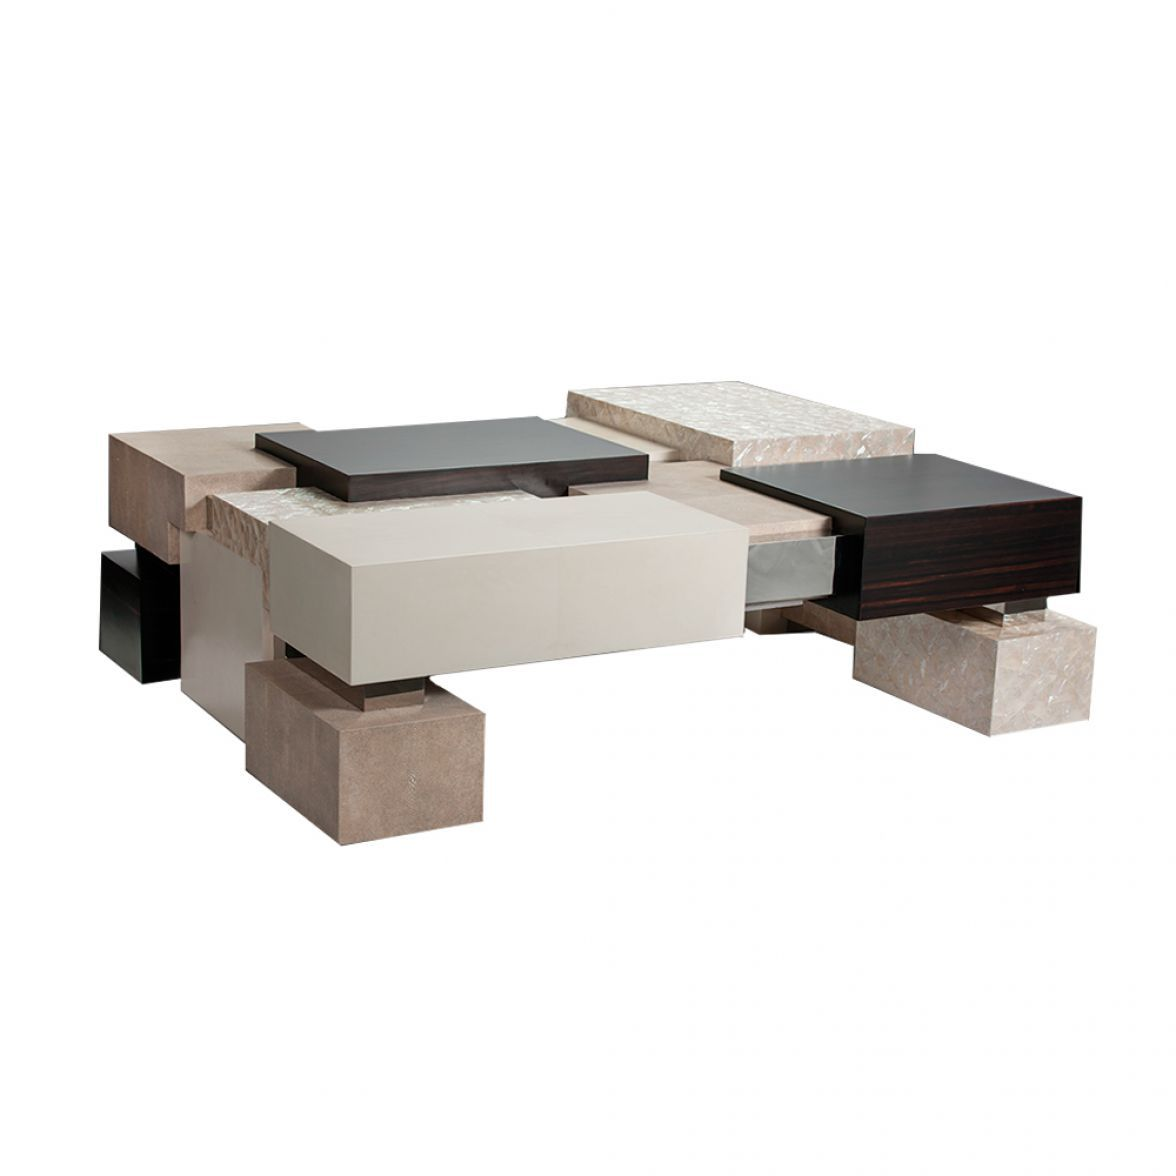 Blocks light coffee table фото цена